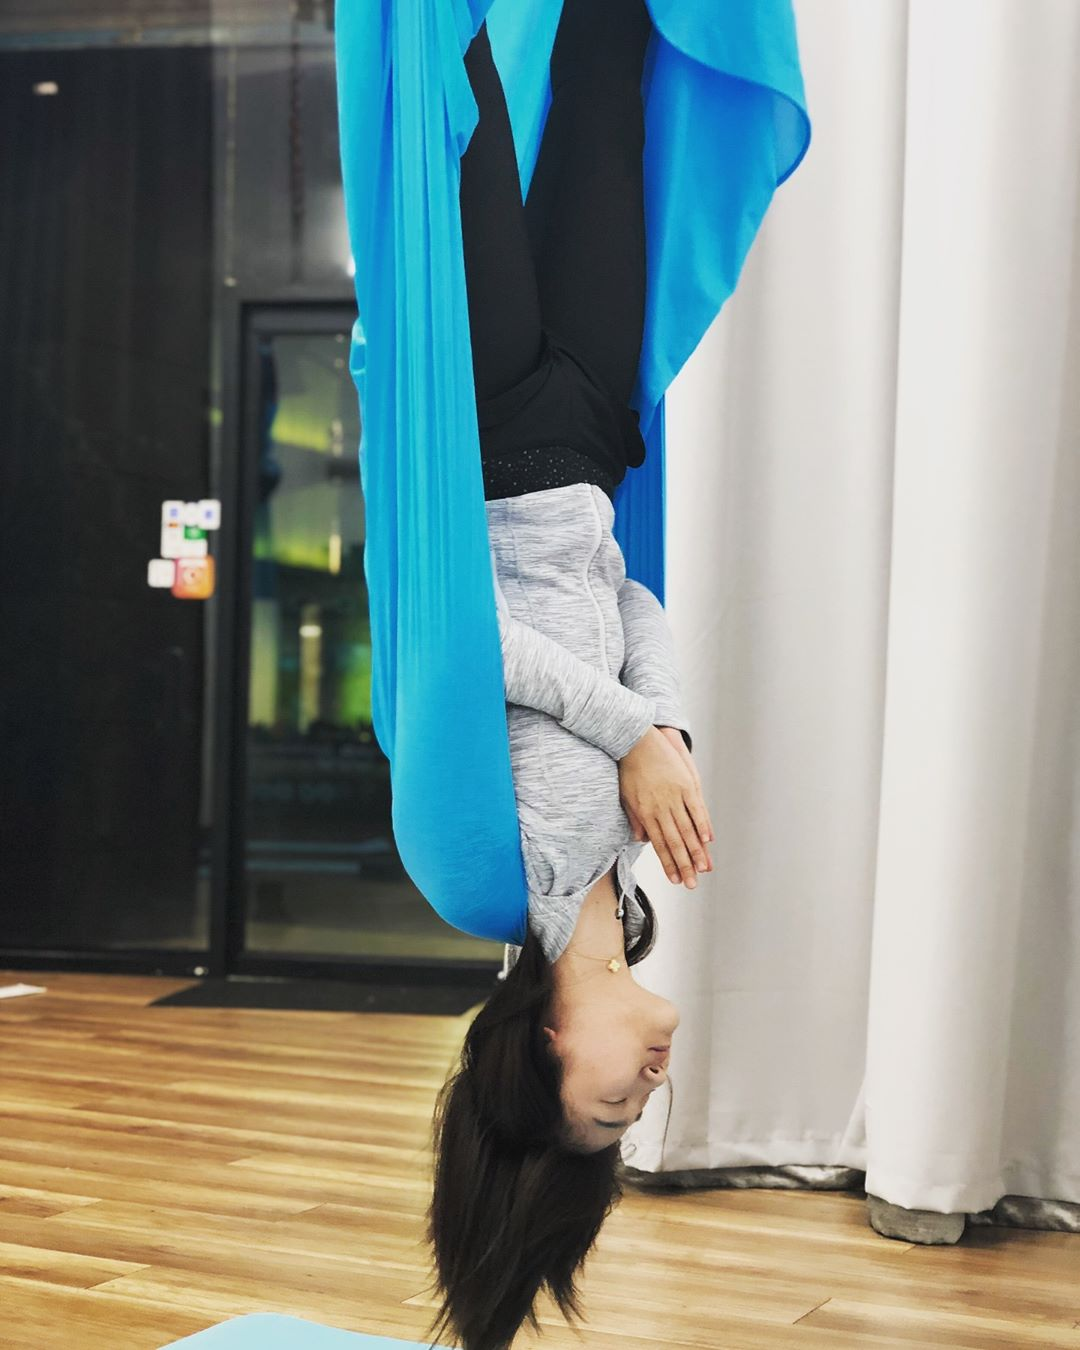 Basic Aerial Yoga Class In Los Angeles